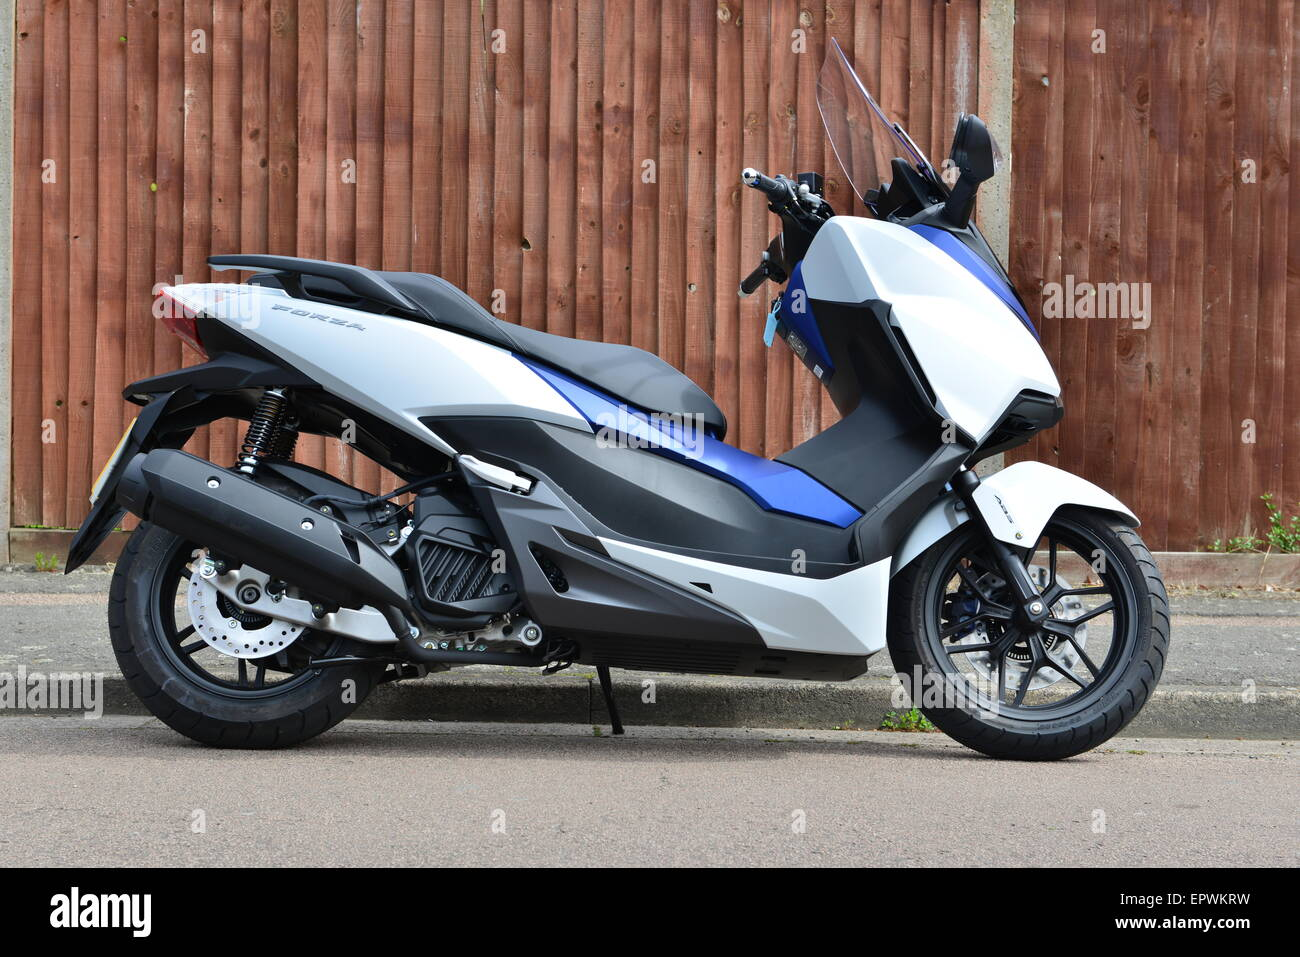 honda forza 125 scooter stock photo royalty free image 82928269 alamy. Black Bedroom Furniture Sets. Home Design Ideas